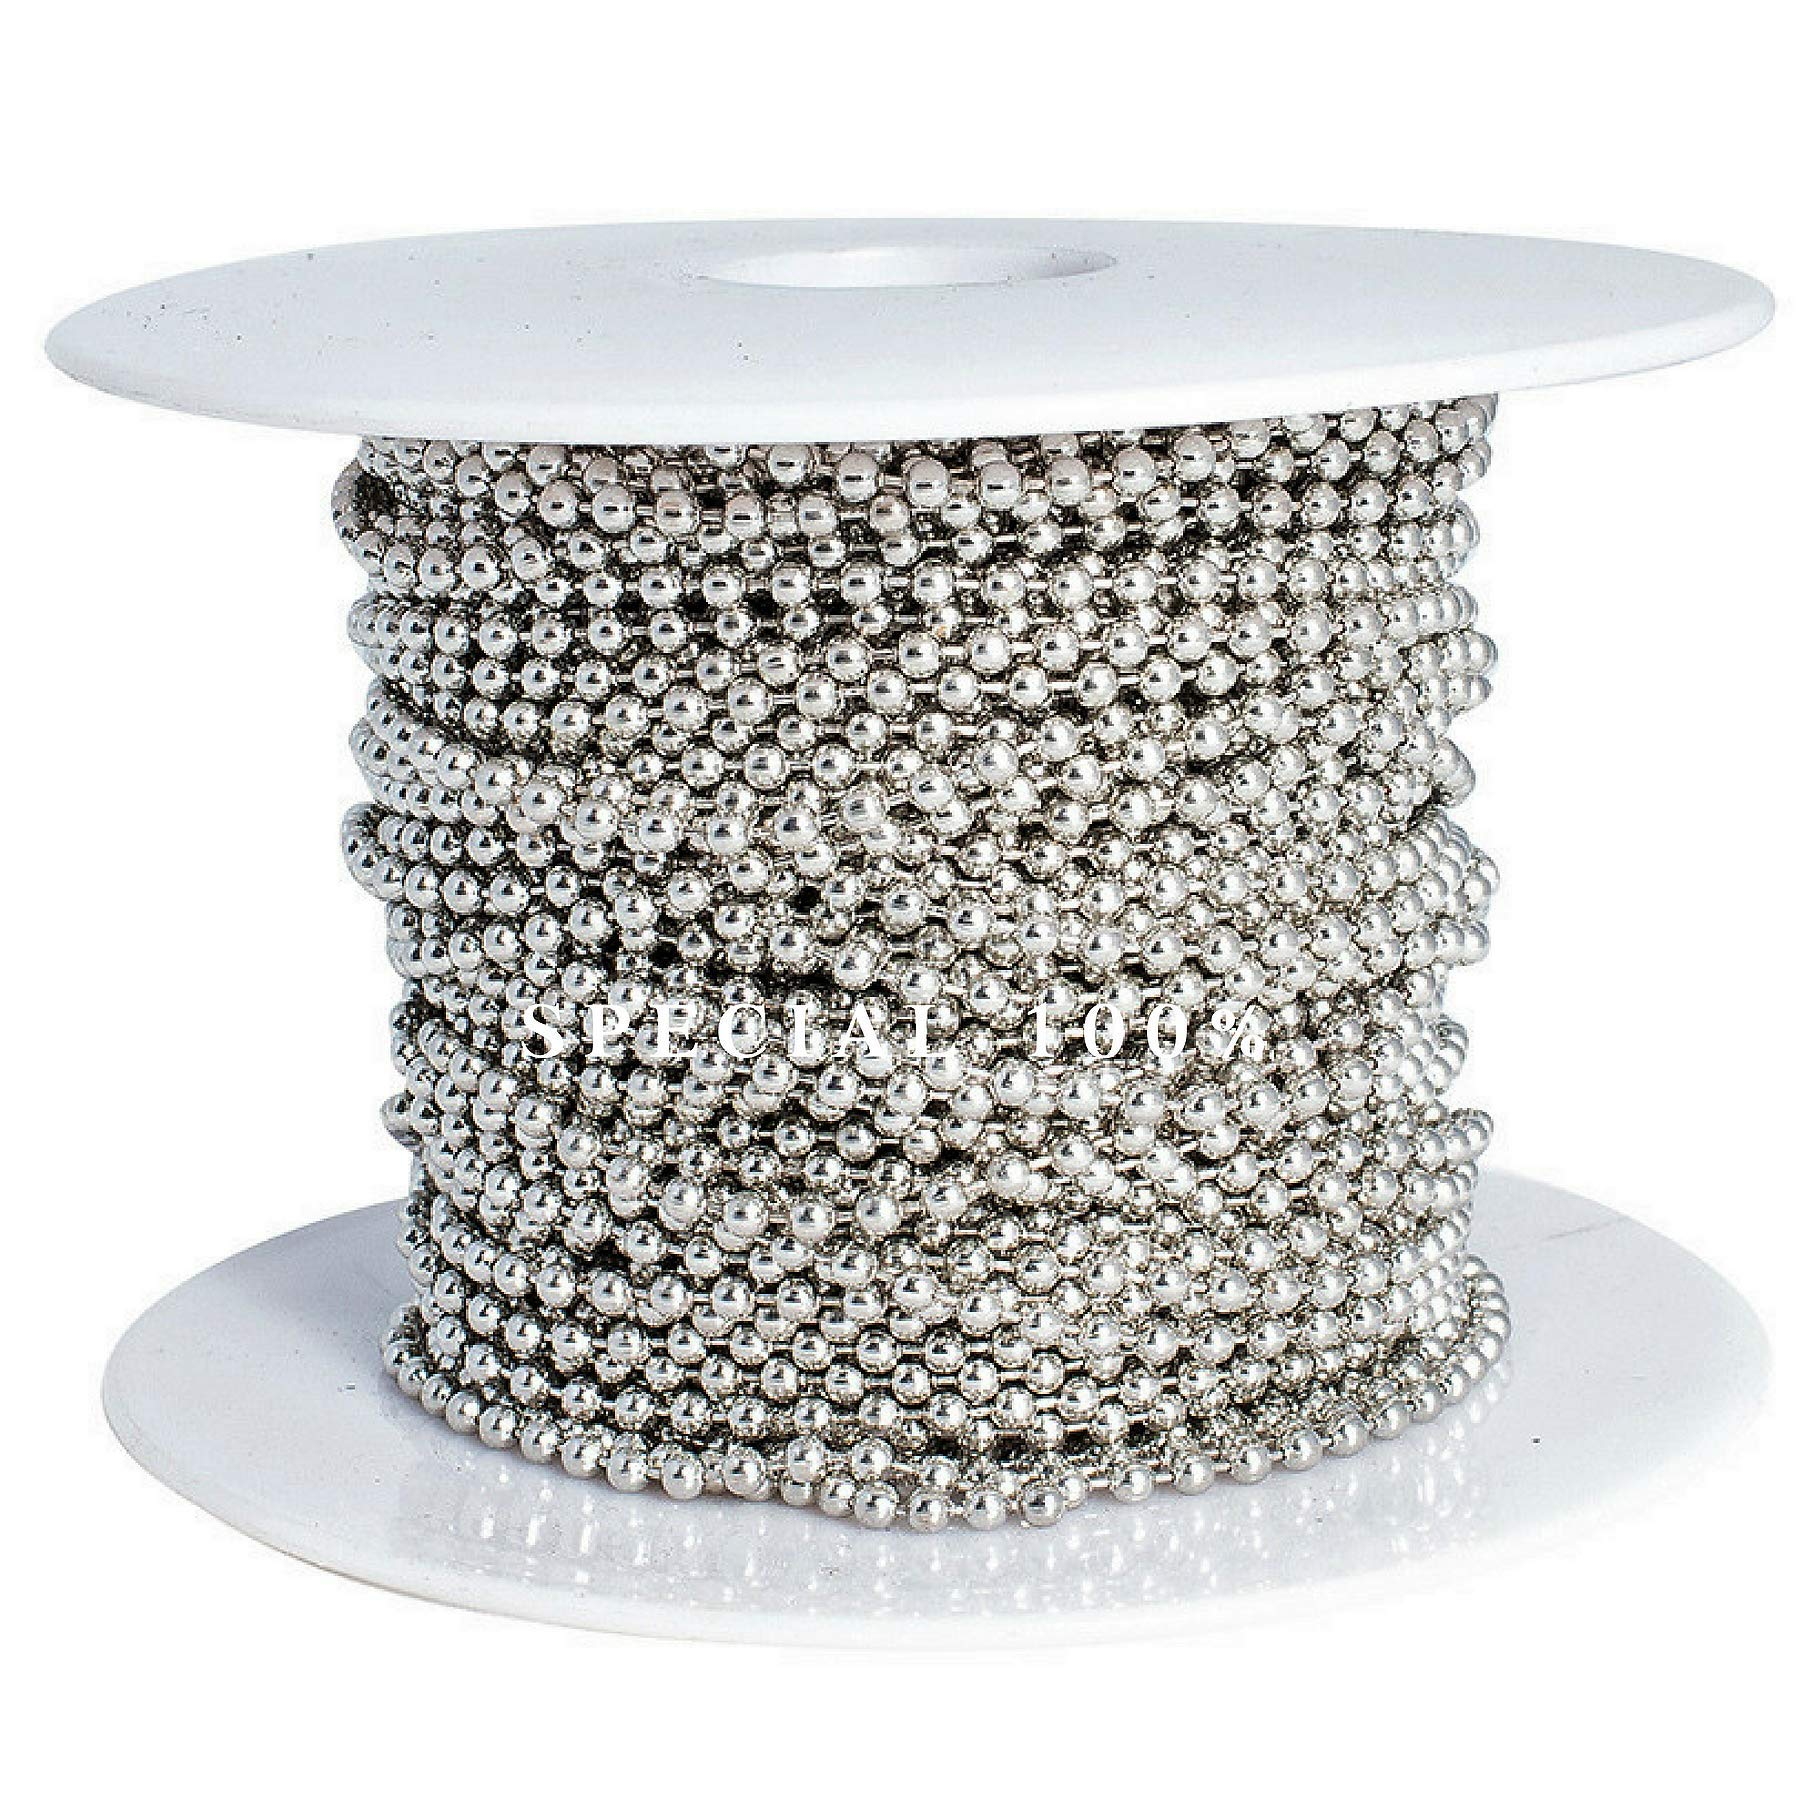 Ball Chain Spool #3 Nickel Plated Steel Bead Chain 2.4 Diameter 100 Feet (33 Yards) Included 30 Pc Matching connectors by Special100%